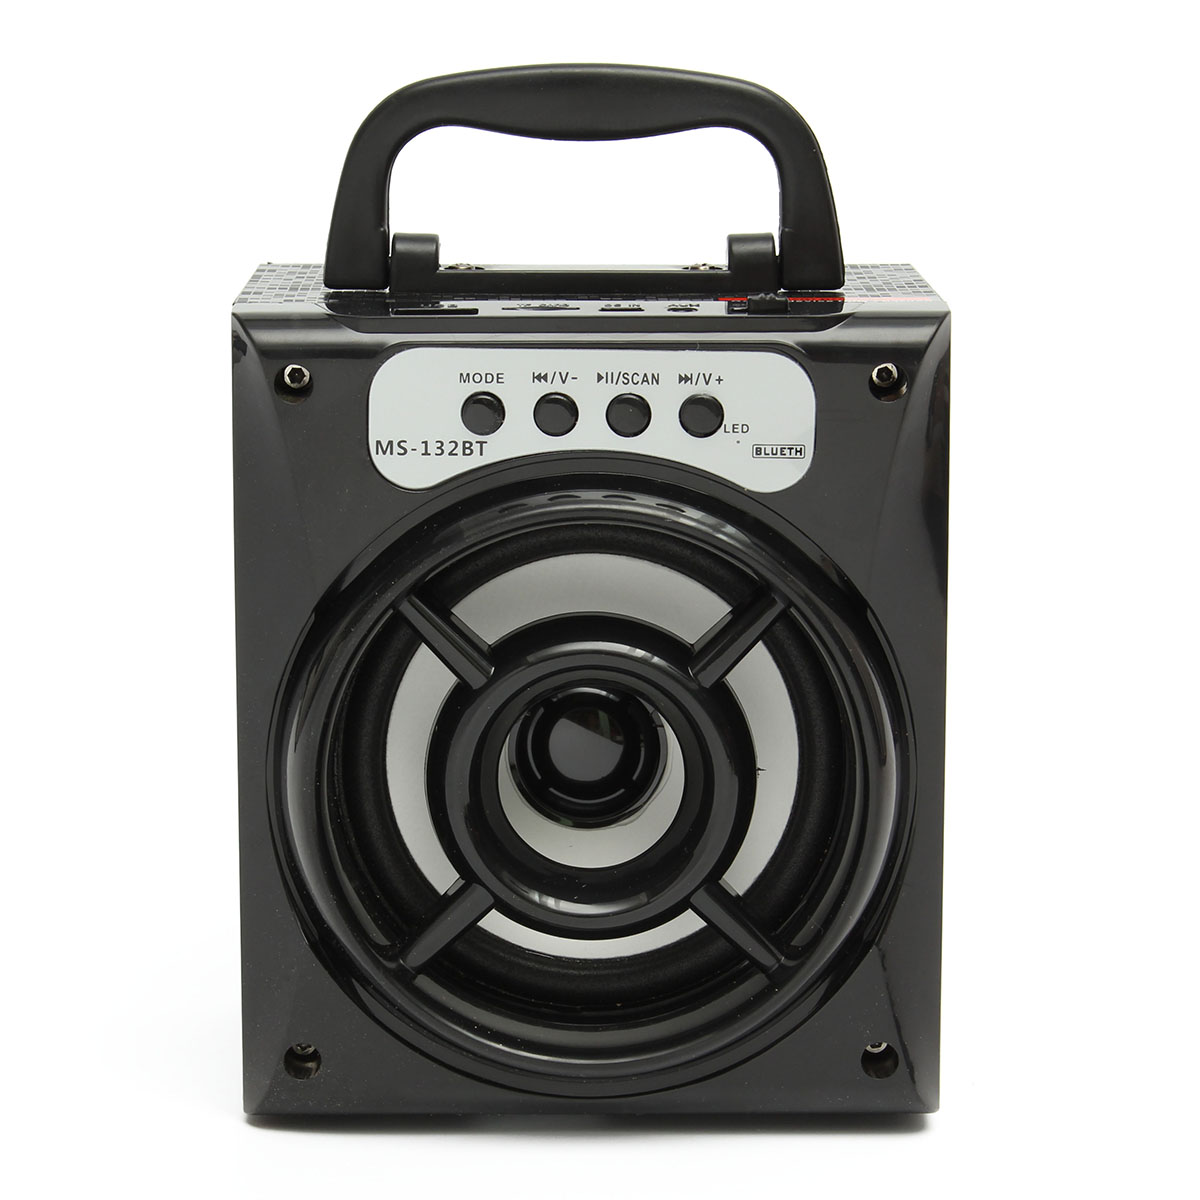 Outdoor bluetooth Portable Dance Sound Speaker 8W Super Bass With USB/TF/AUX/FM Radio